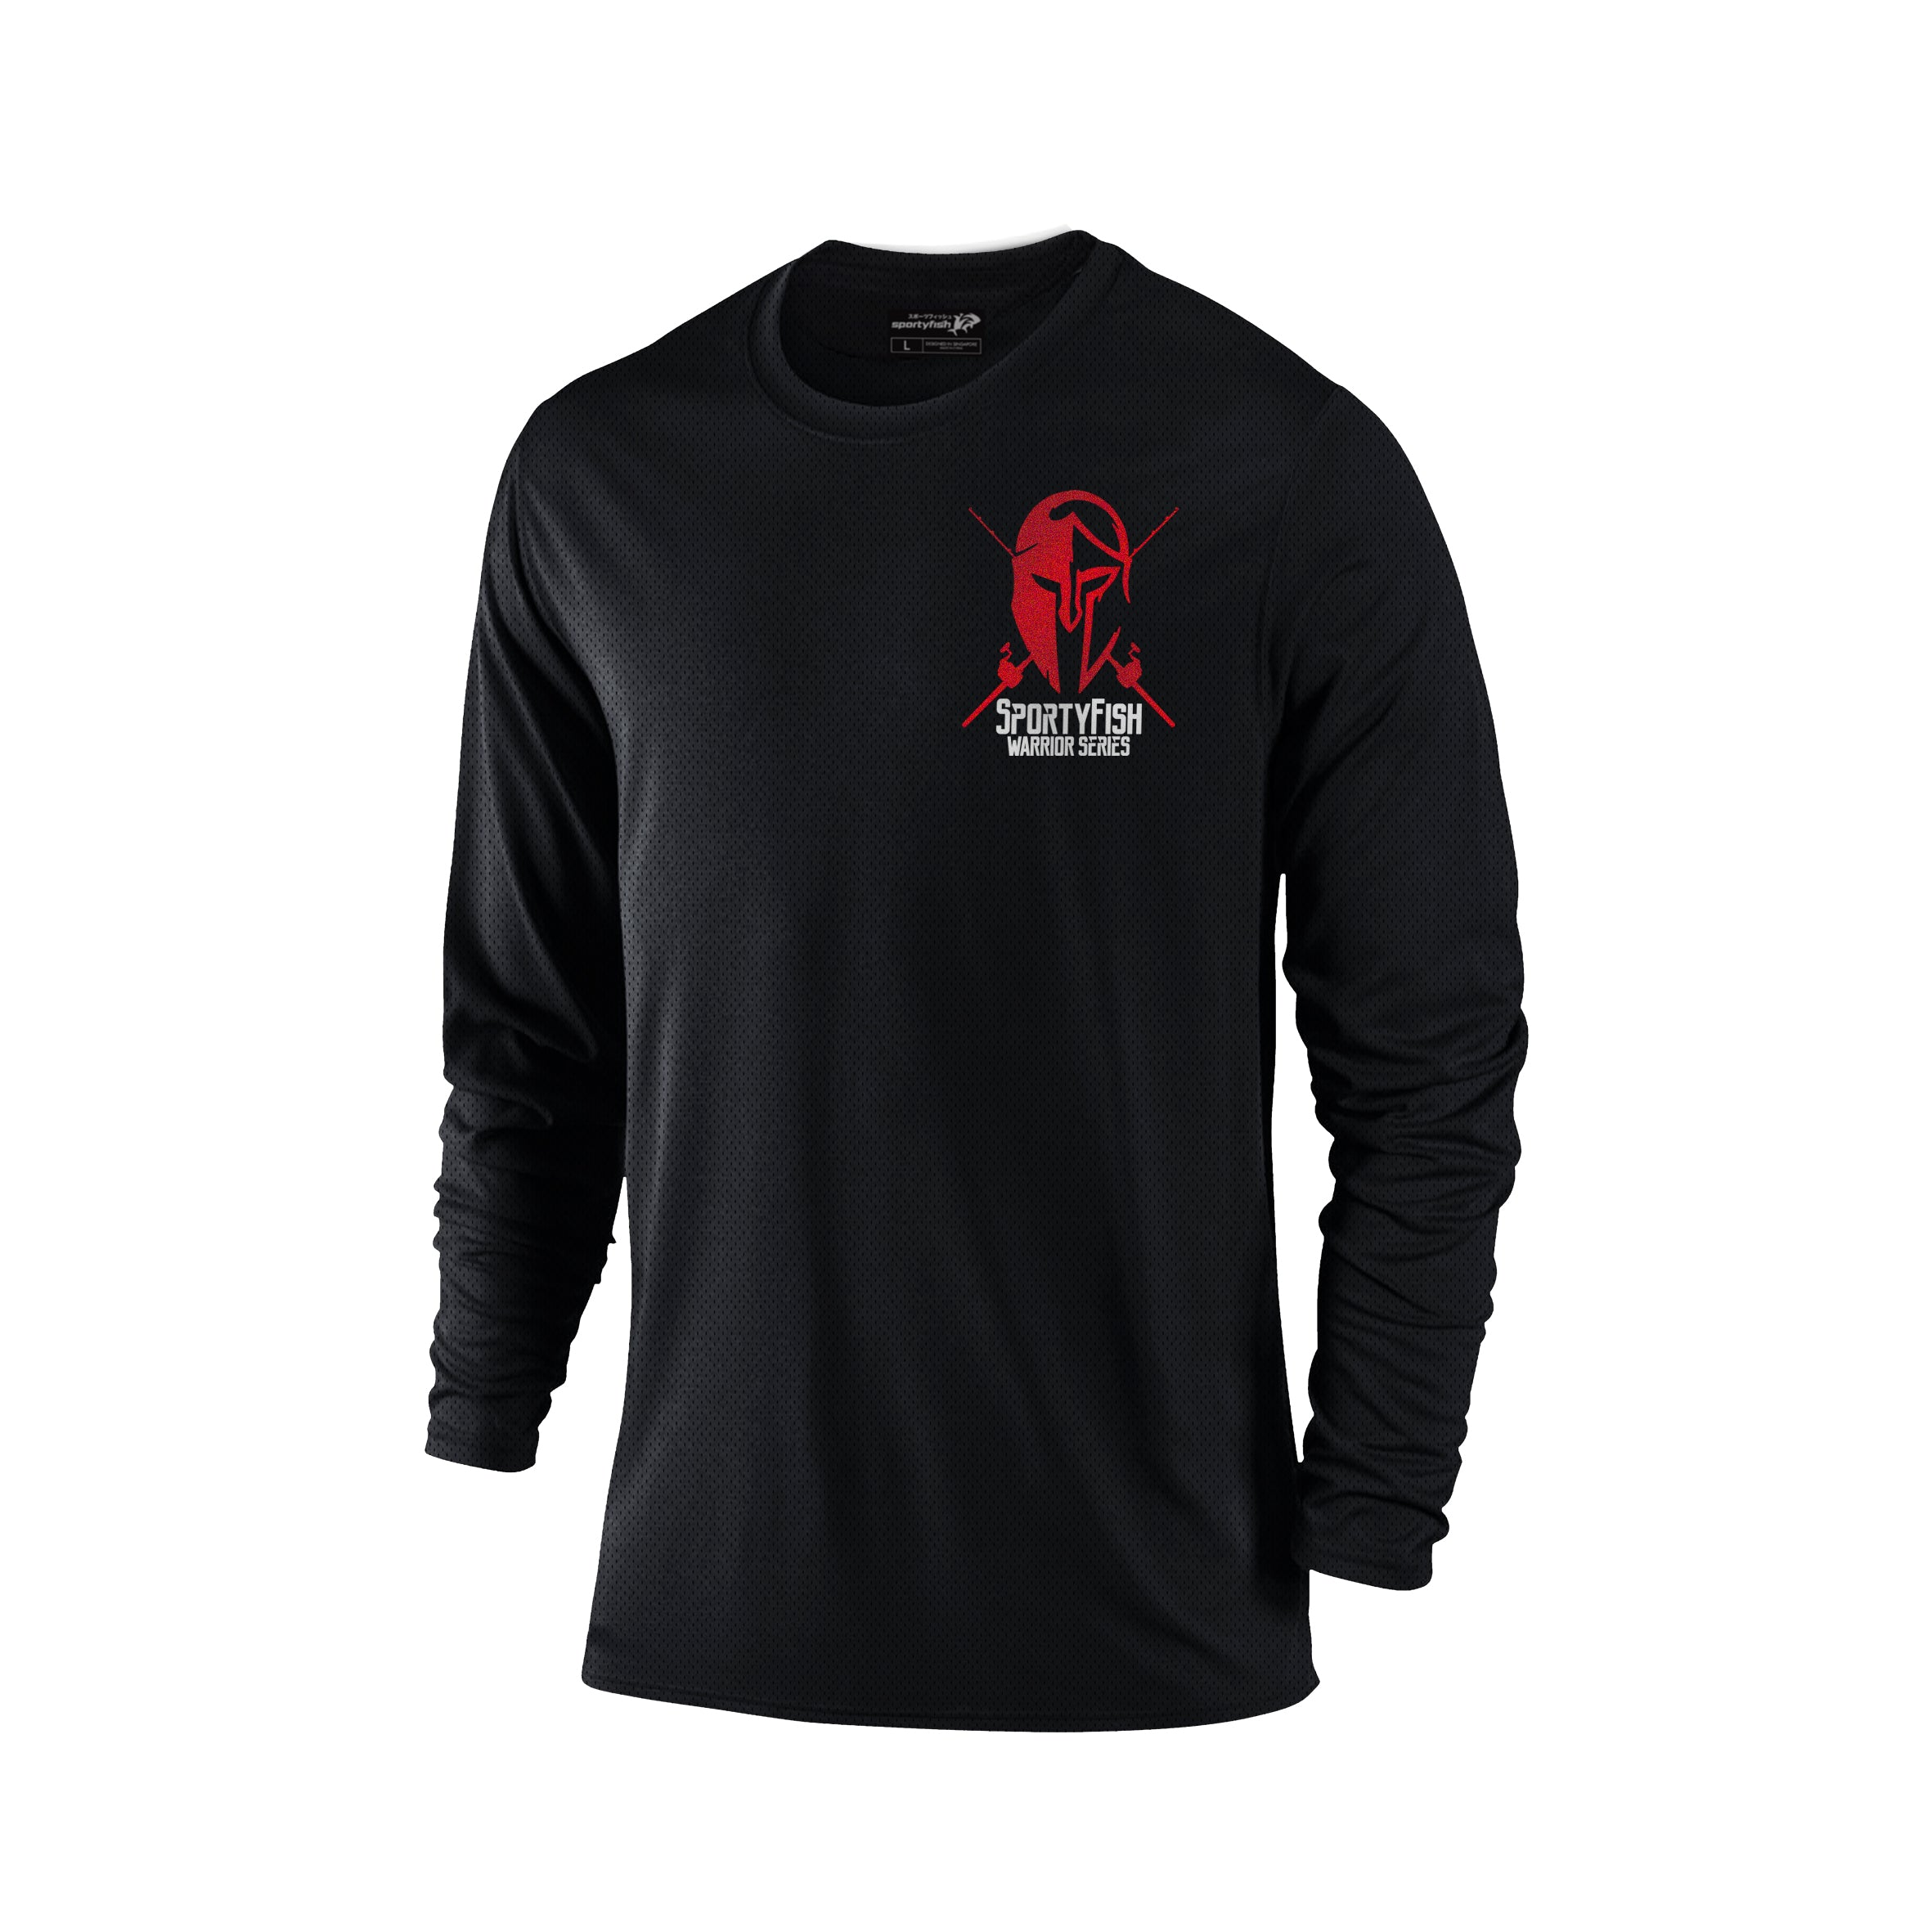 The Lure(Long-sleeves)